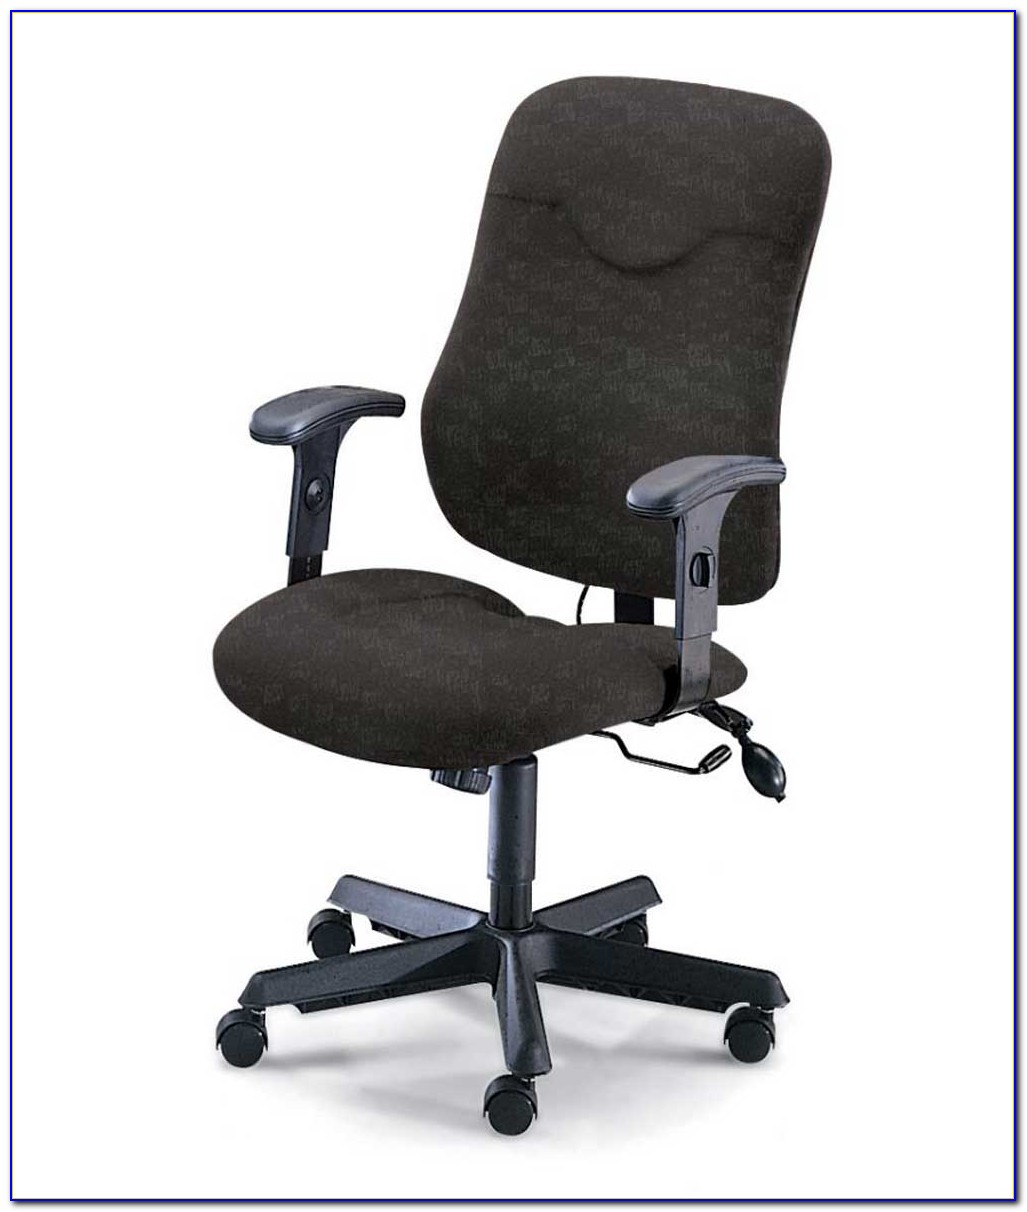 best ergonomic chairs in india bedroom chair fluffy office for back pain desk home